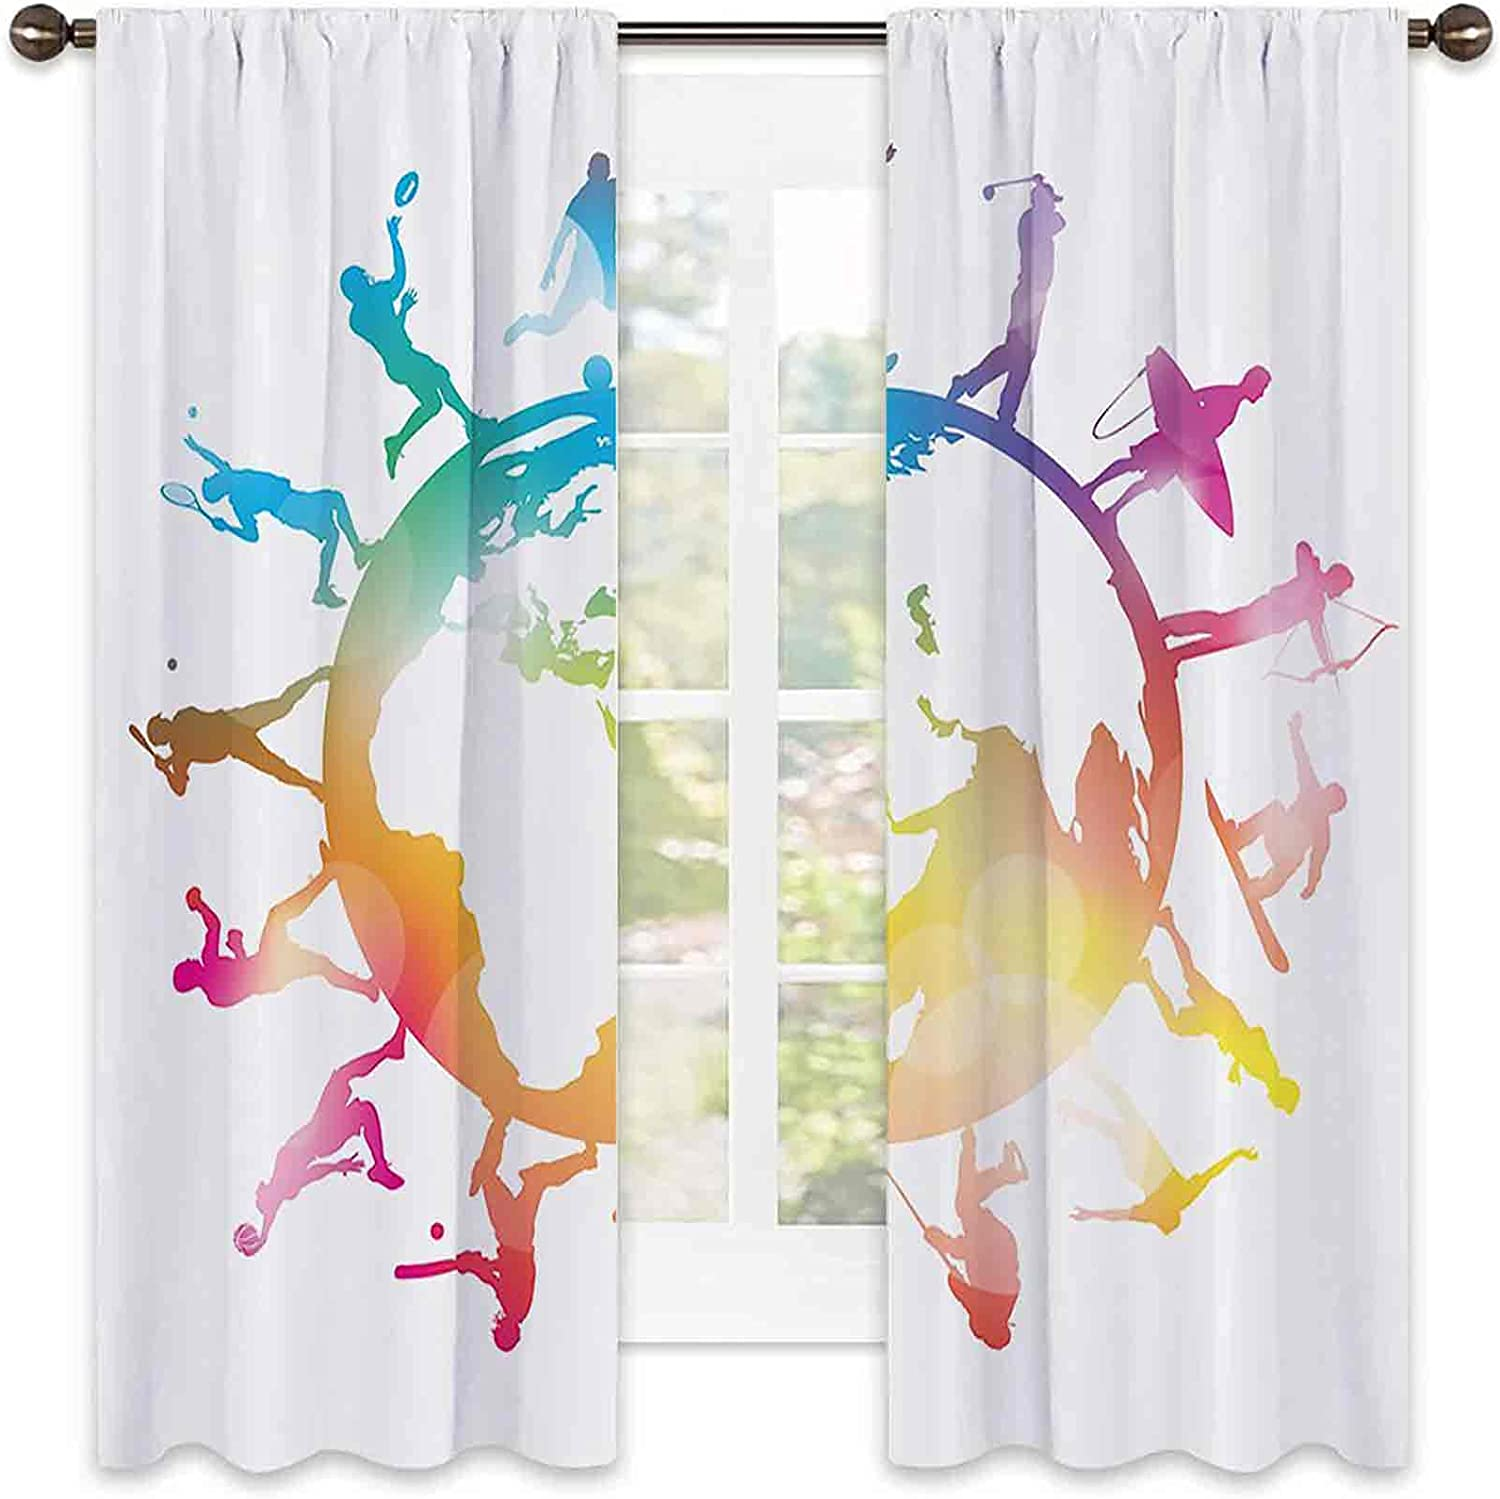 Product Sports Max 62% OFF Decorations Collection and Noise-reducing Energy-Saving